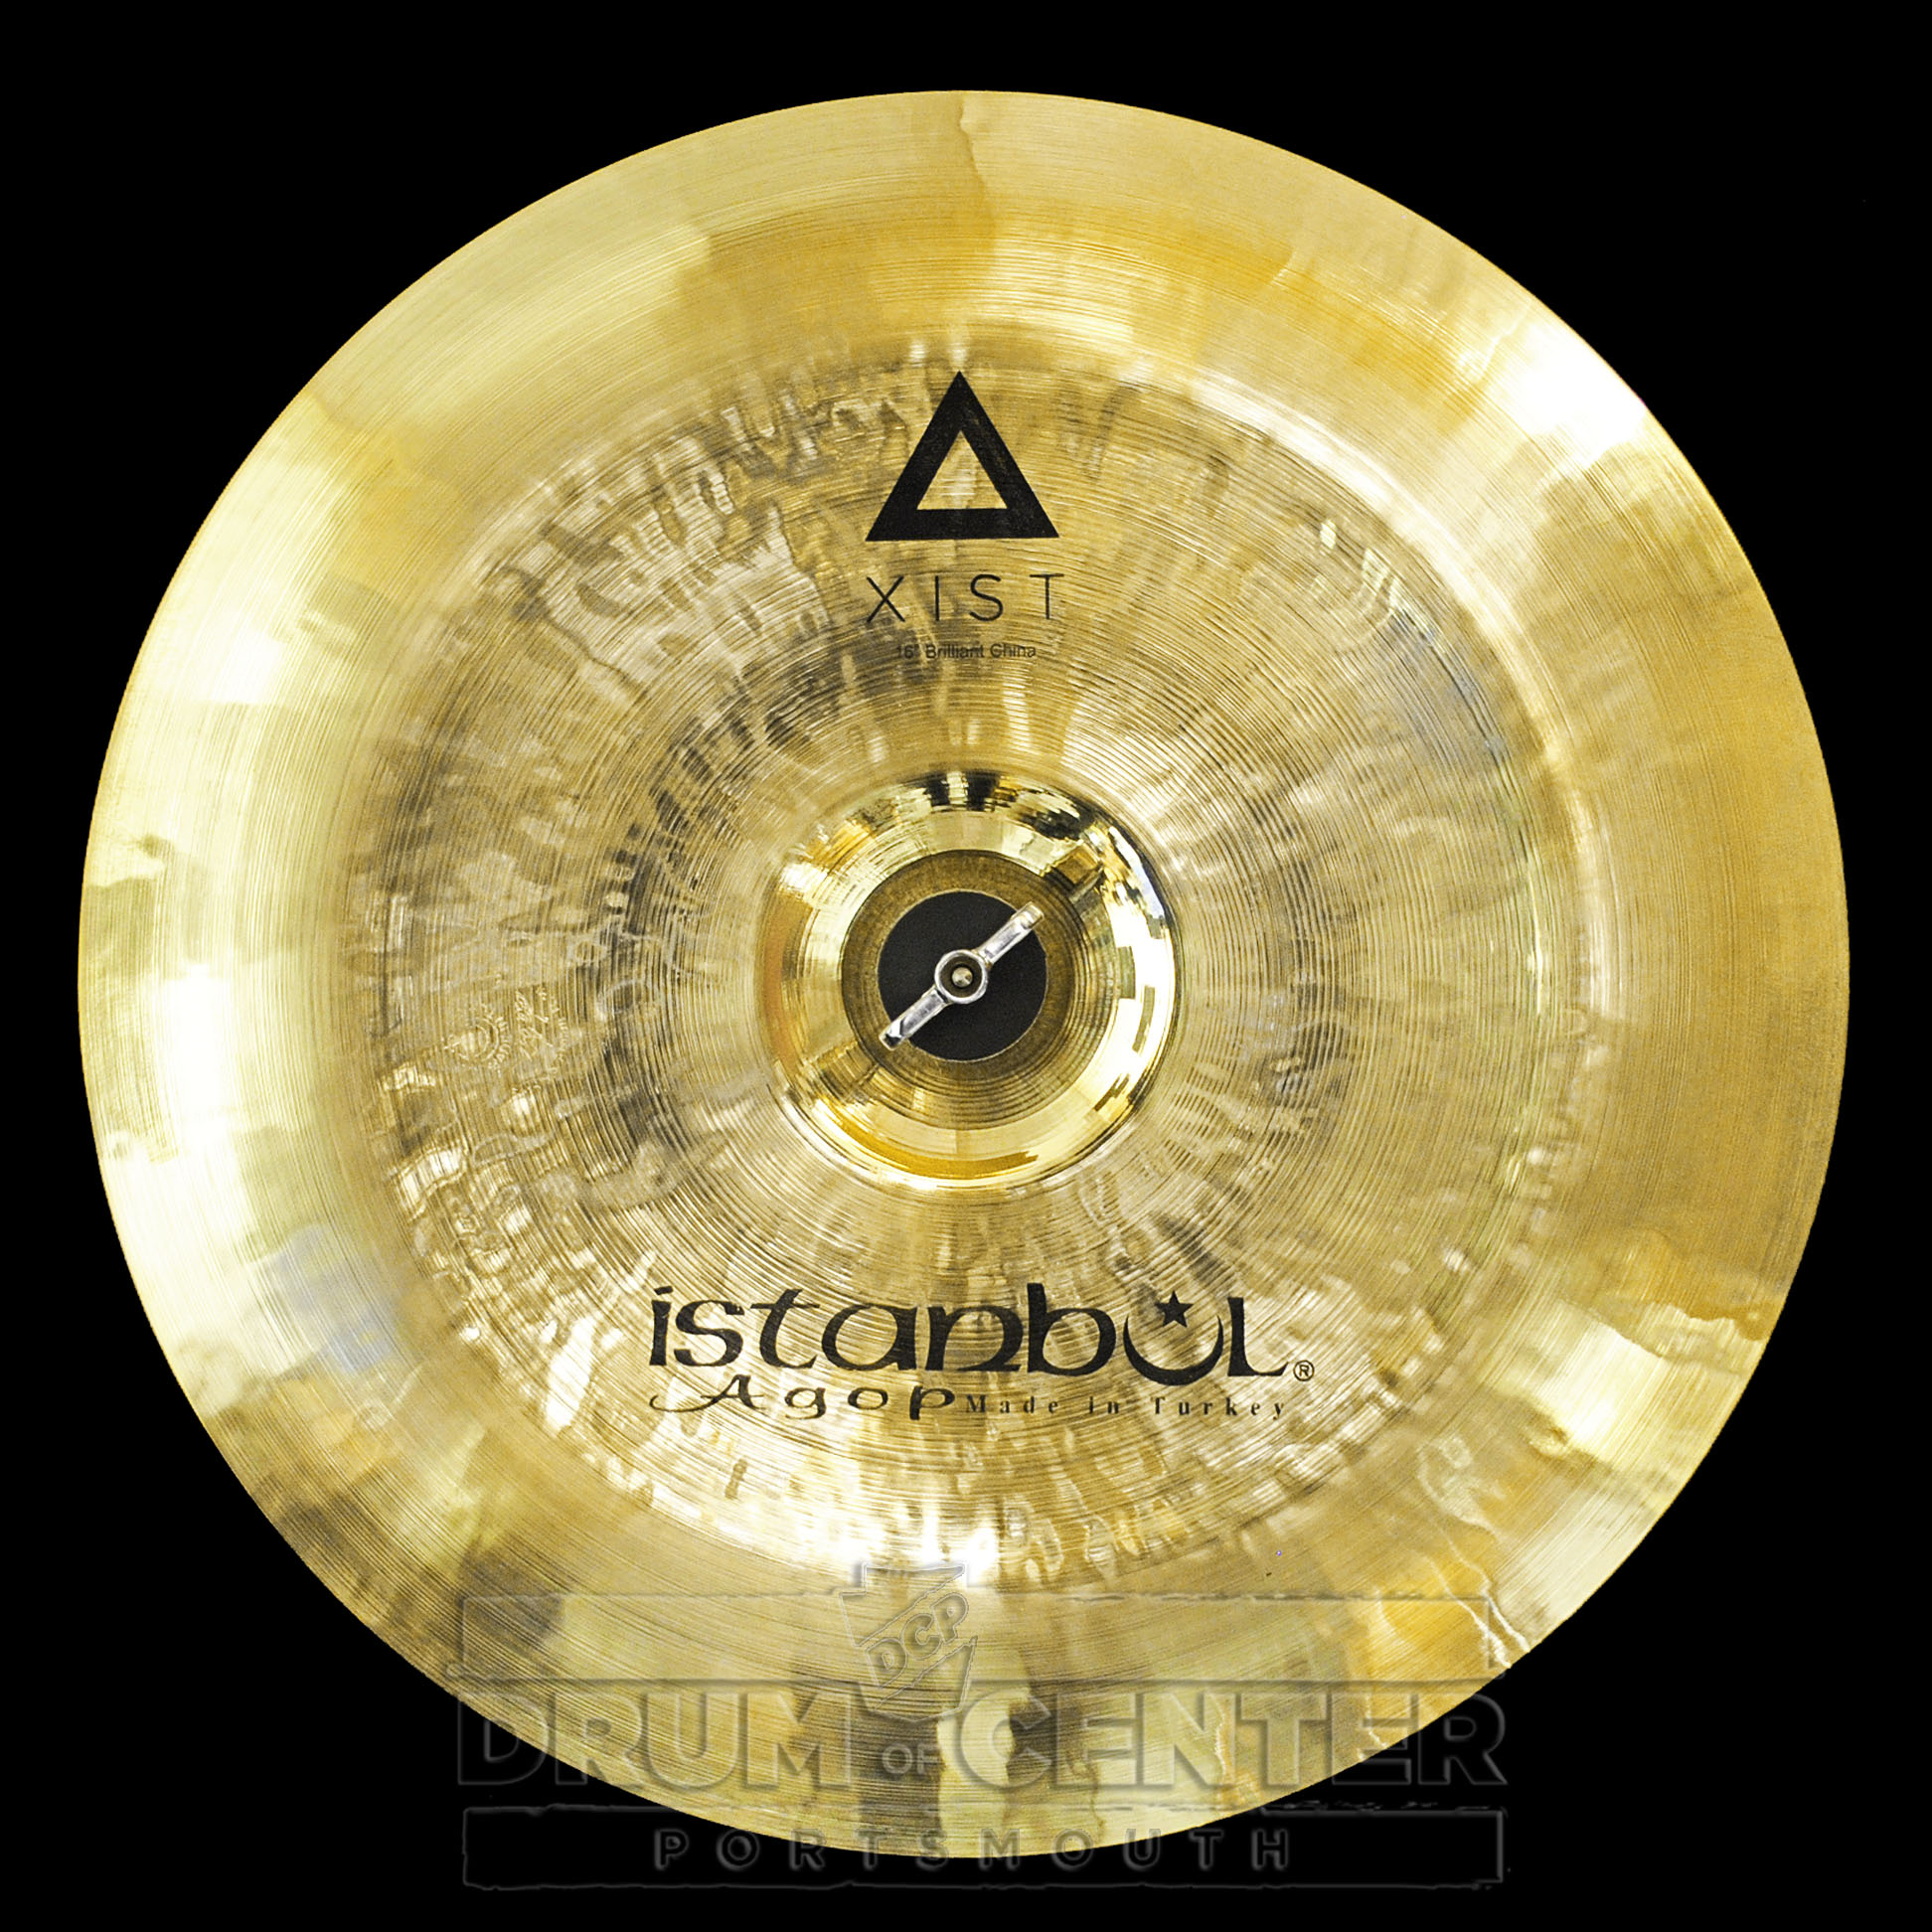 istanbul agop xist brilliant china cymbal 16 video demo ebay. Black Bedroom Furniture Sets. Home Design Ideas